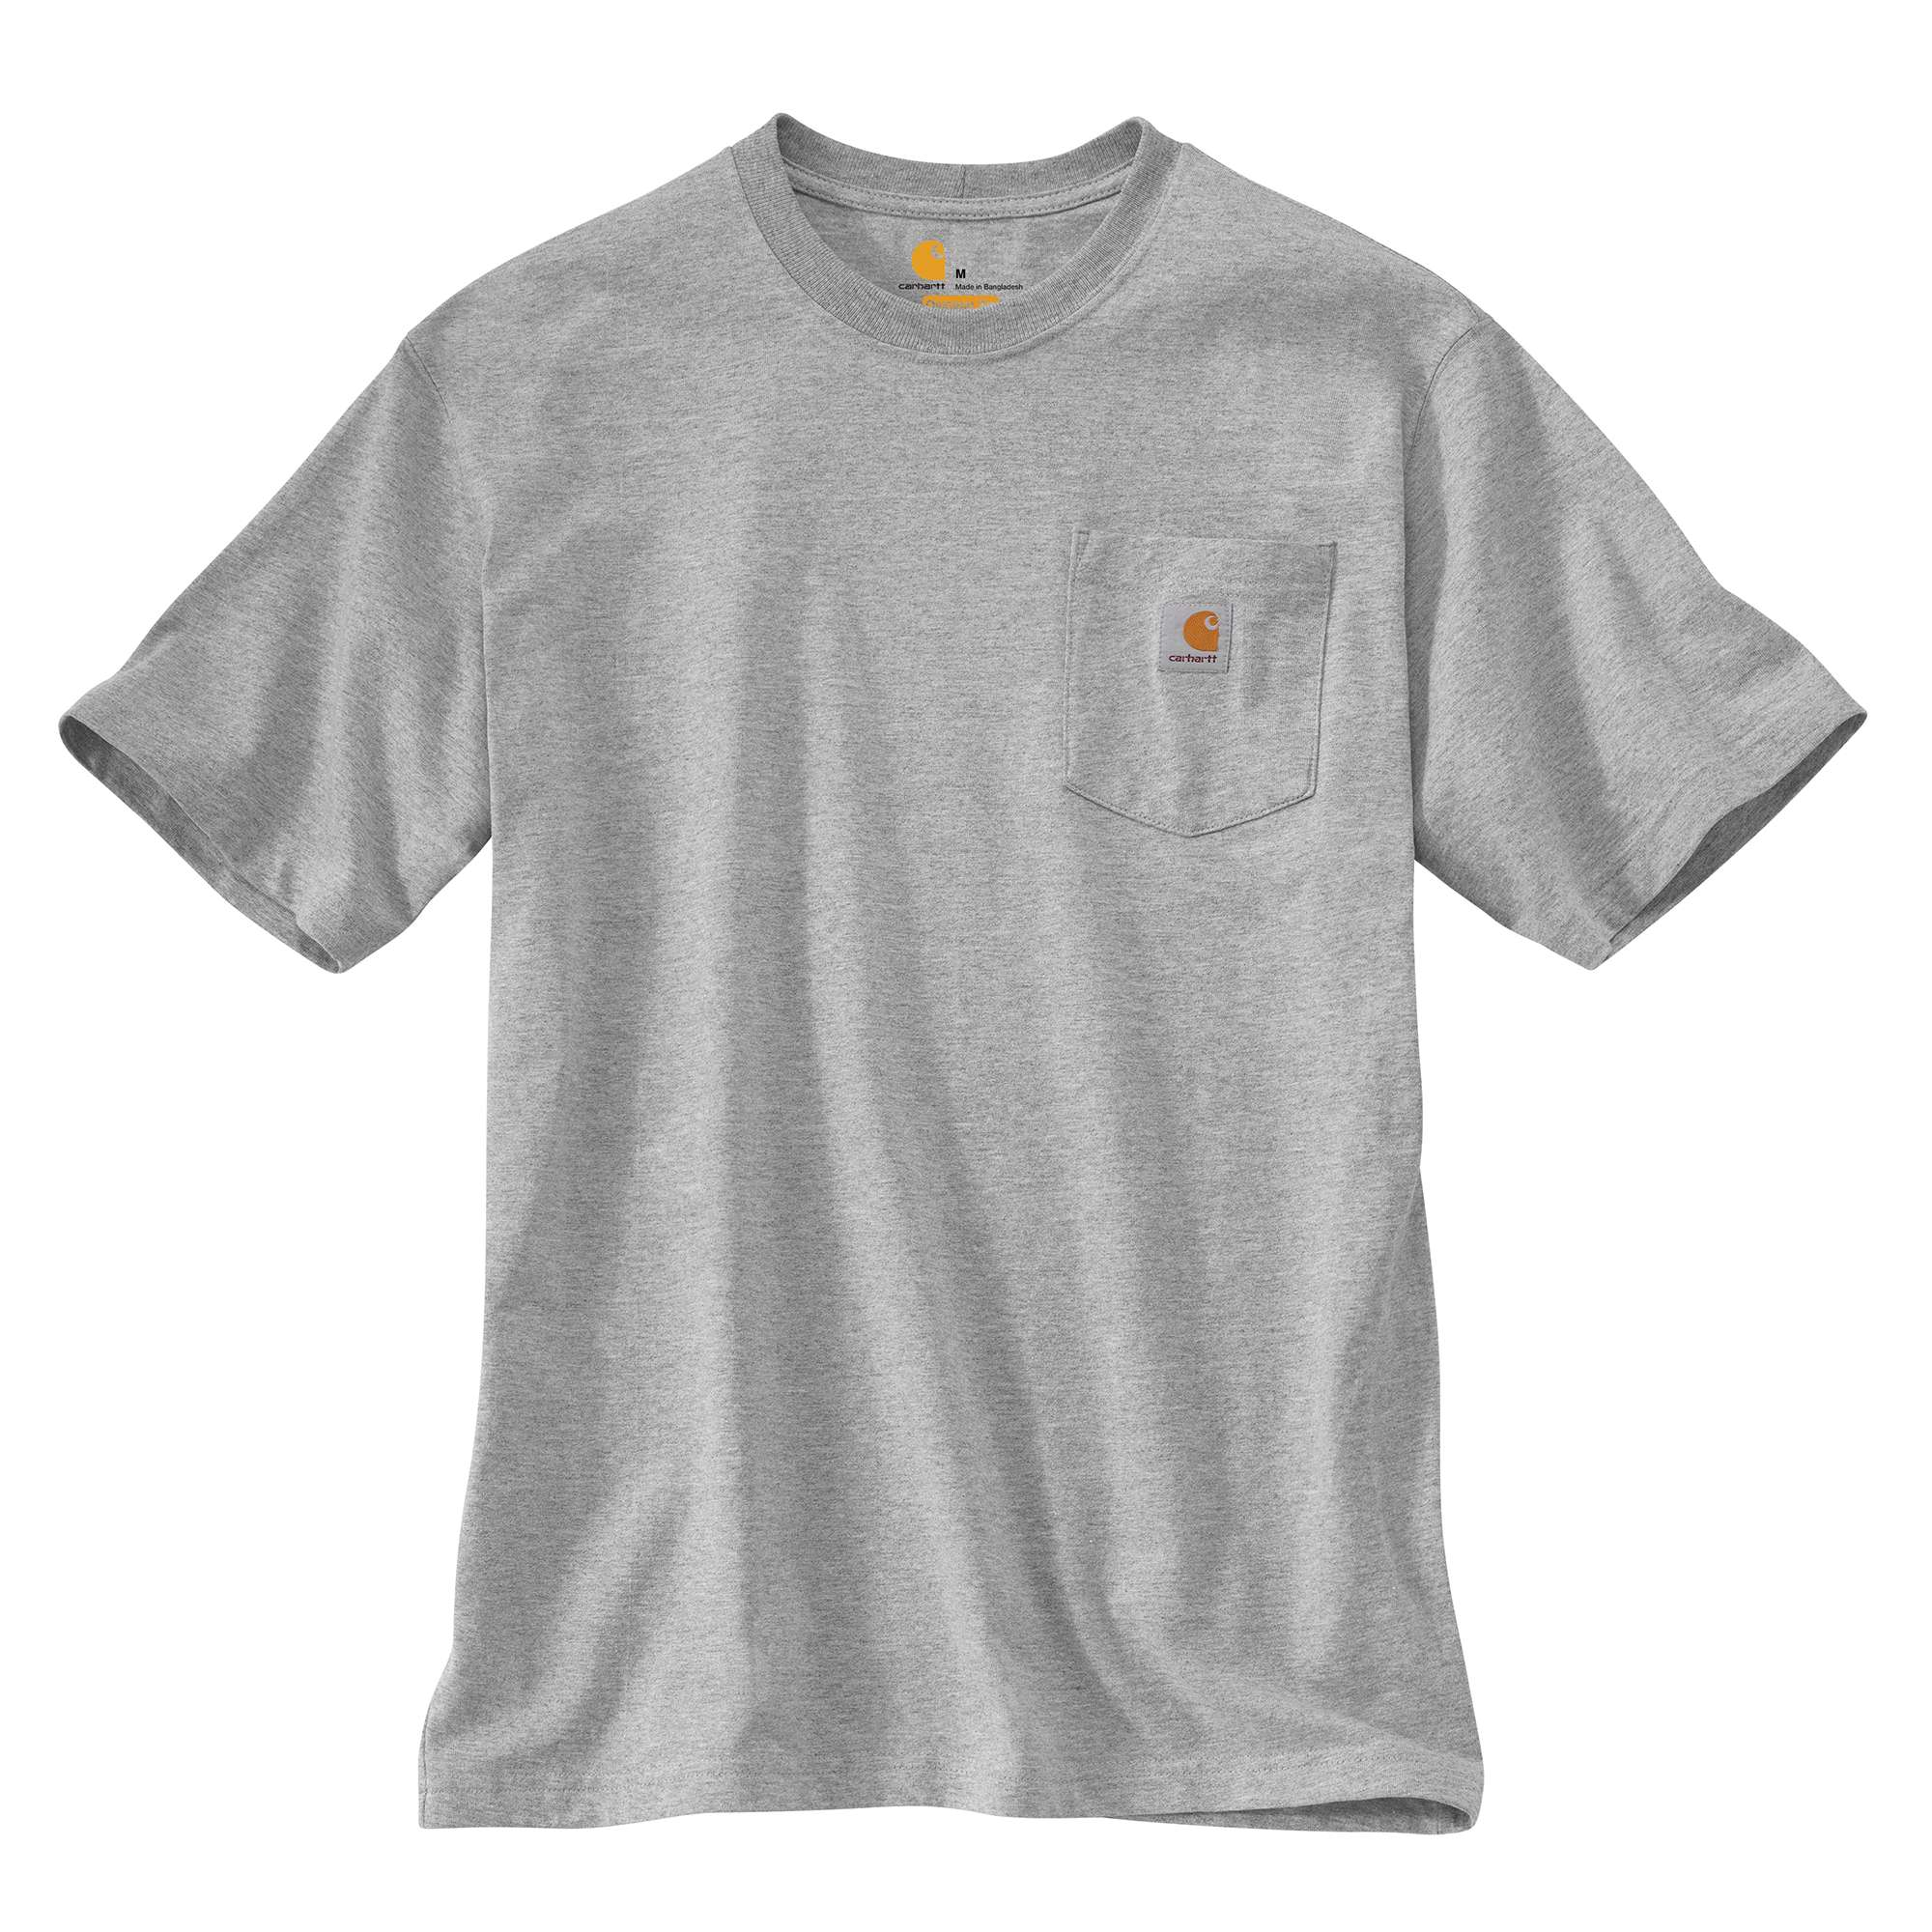 MEN'S WORKWEAR POCKET T-SHIRT - RELAXED FIT